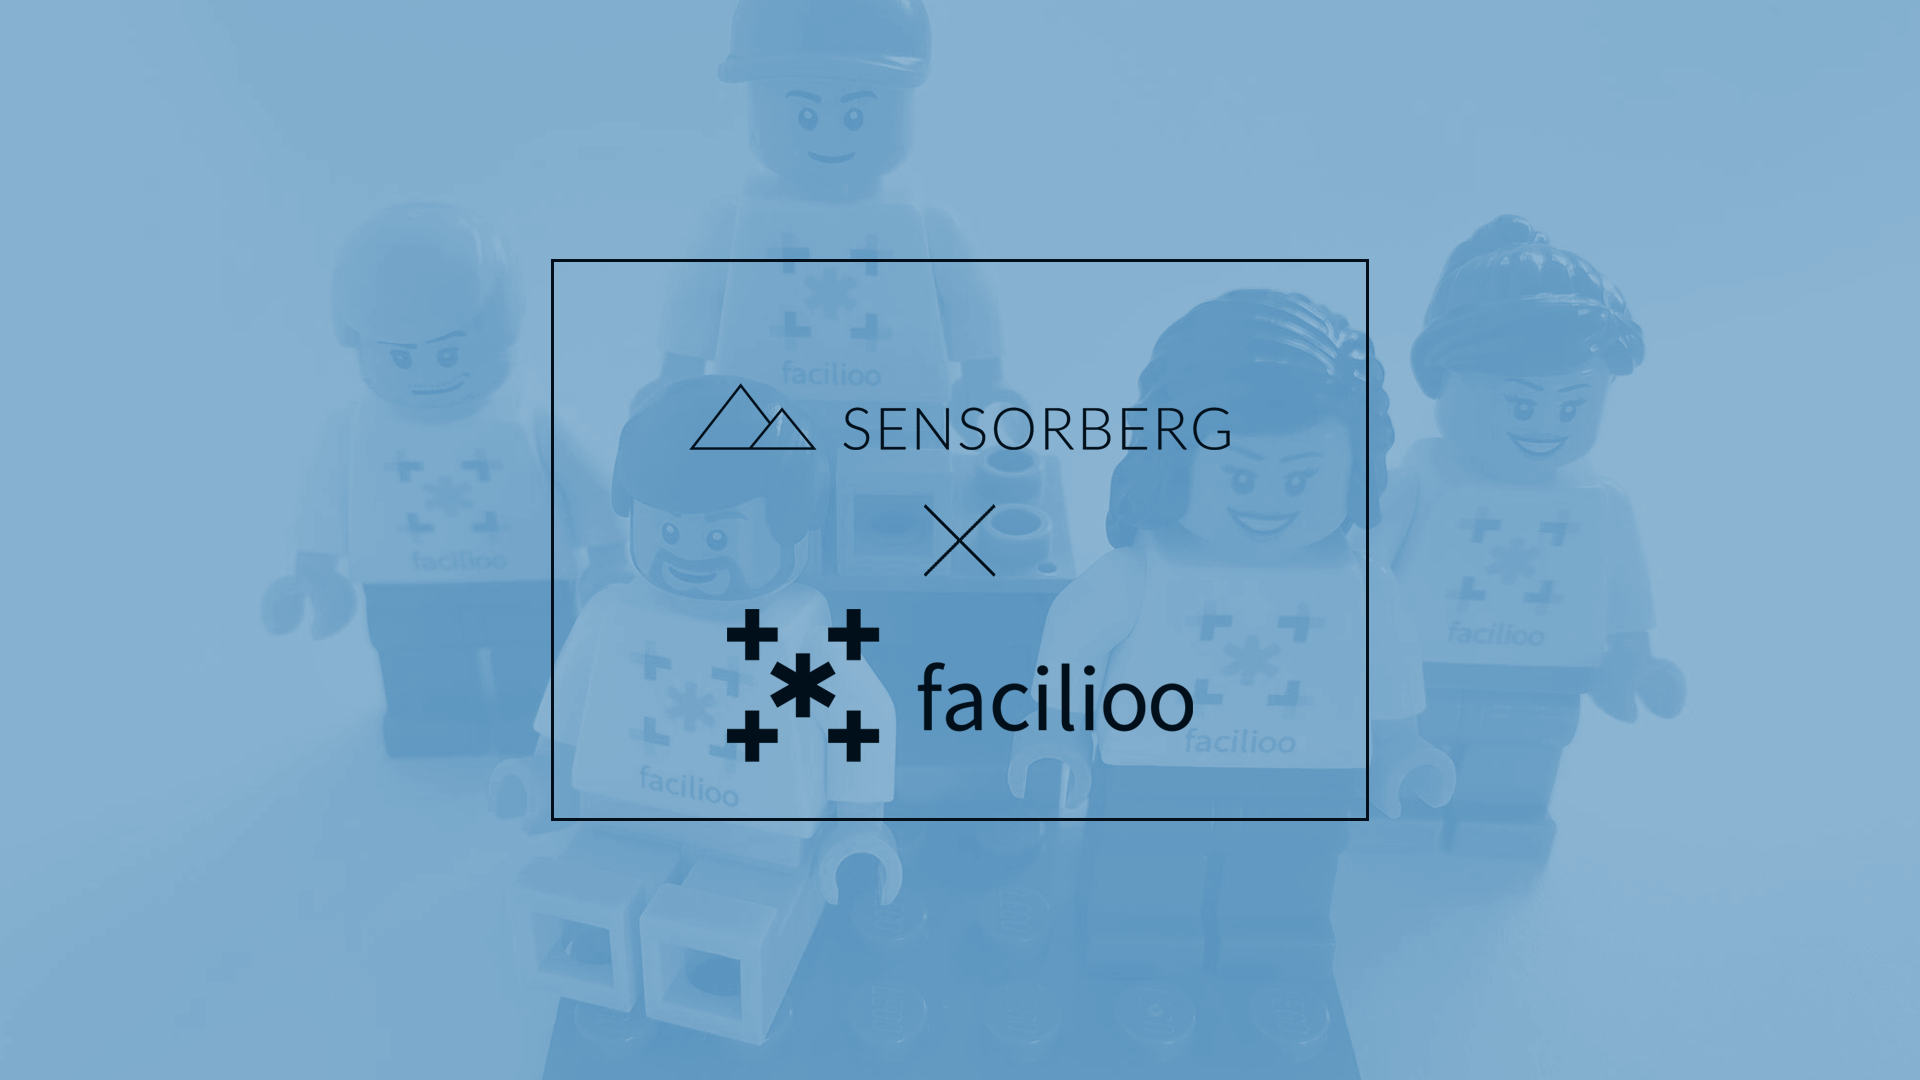 Sensorberg and facilioo enter into cooperation to offer joint services